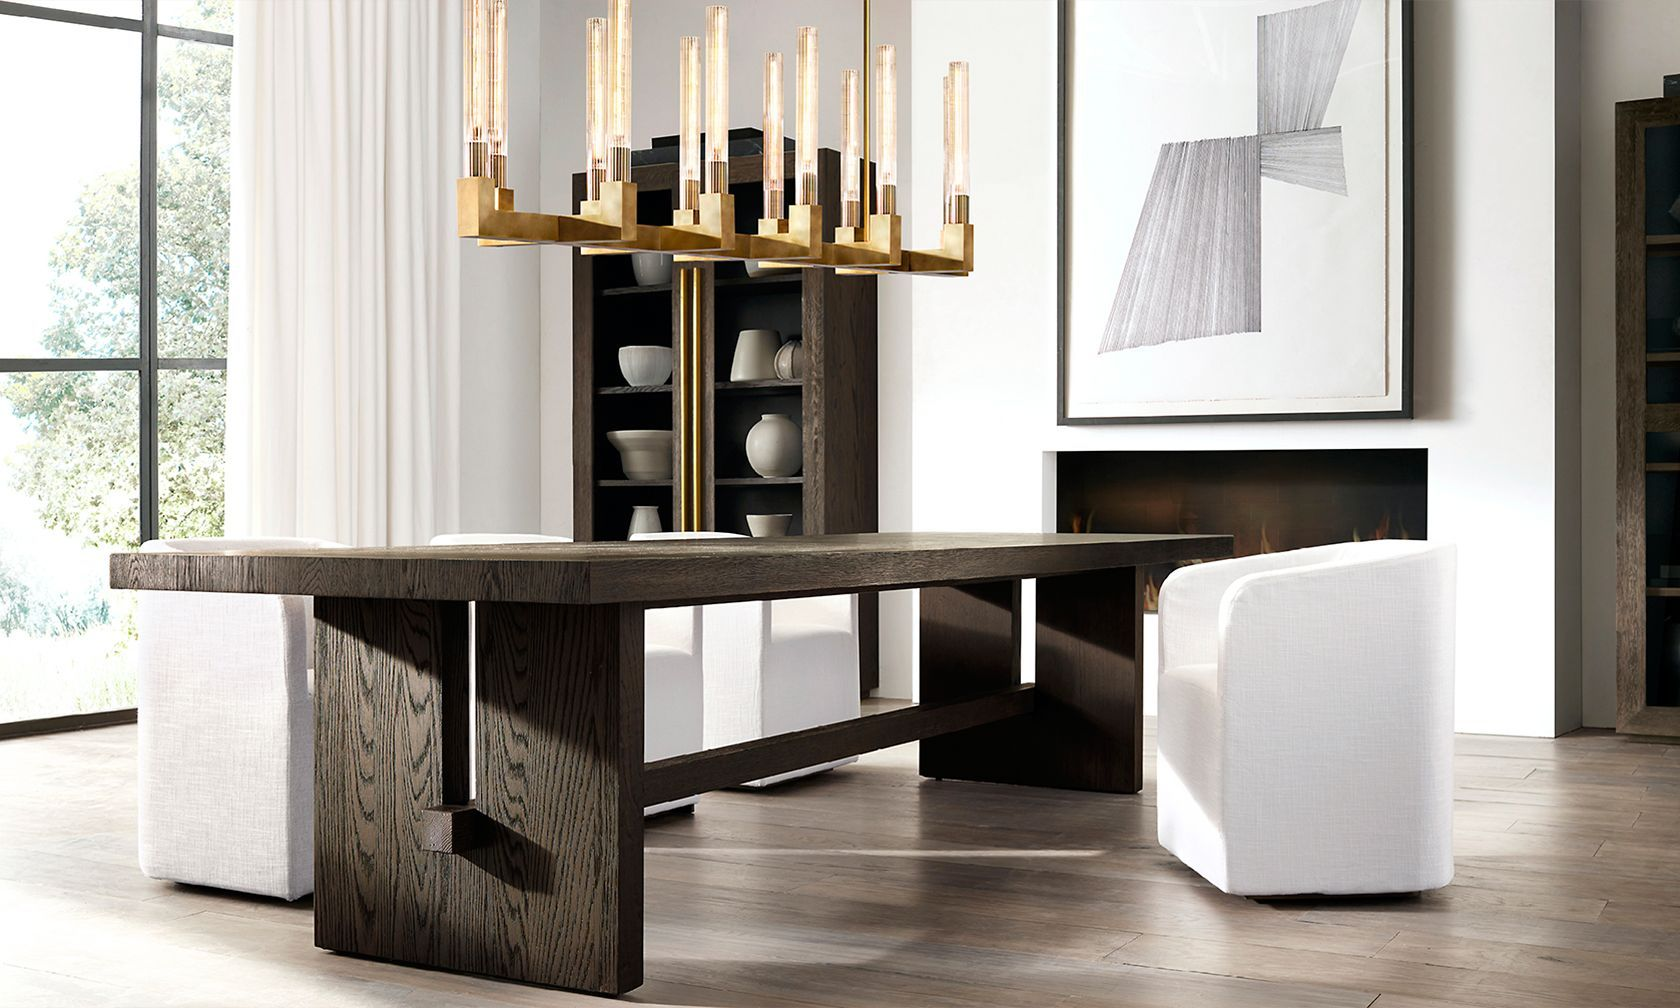 Introducing The Pacamara Dining Table Collection I